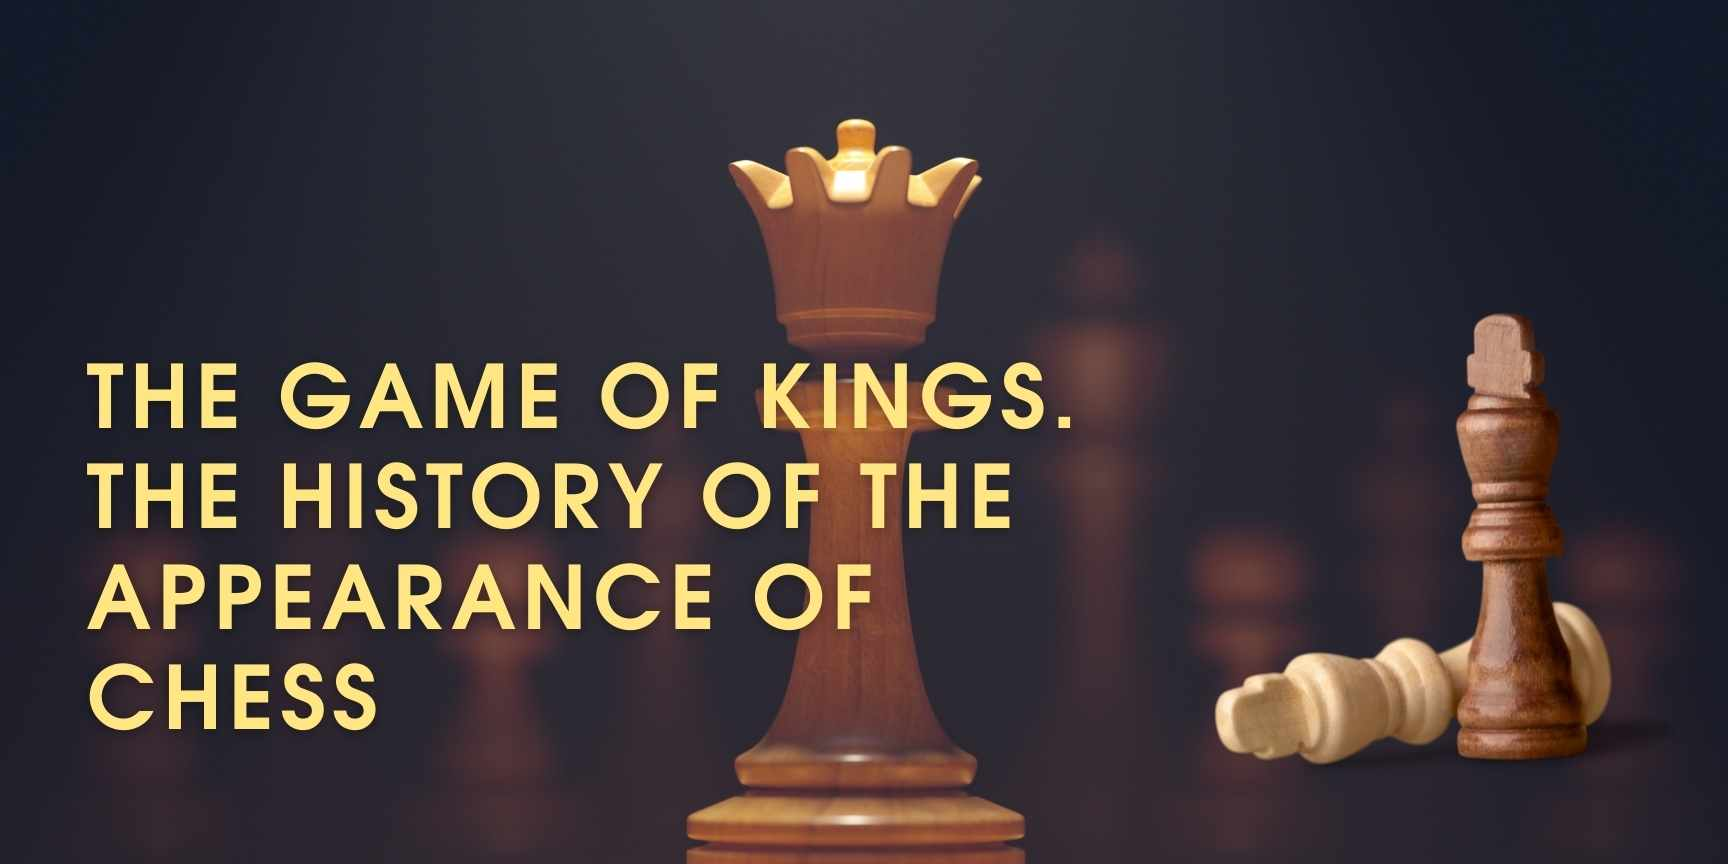 The game of kings. The history of the appearance of chess post thumbnail image